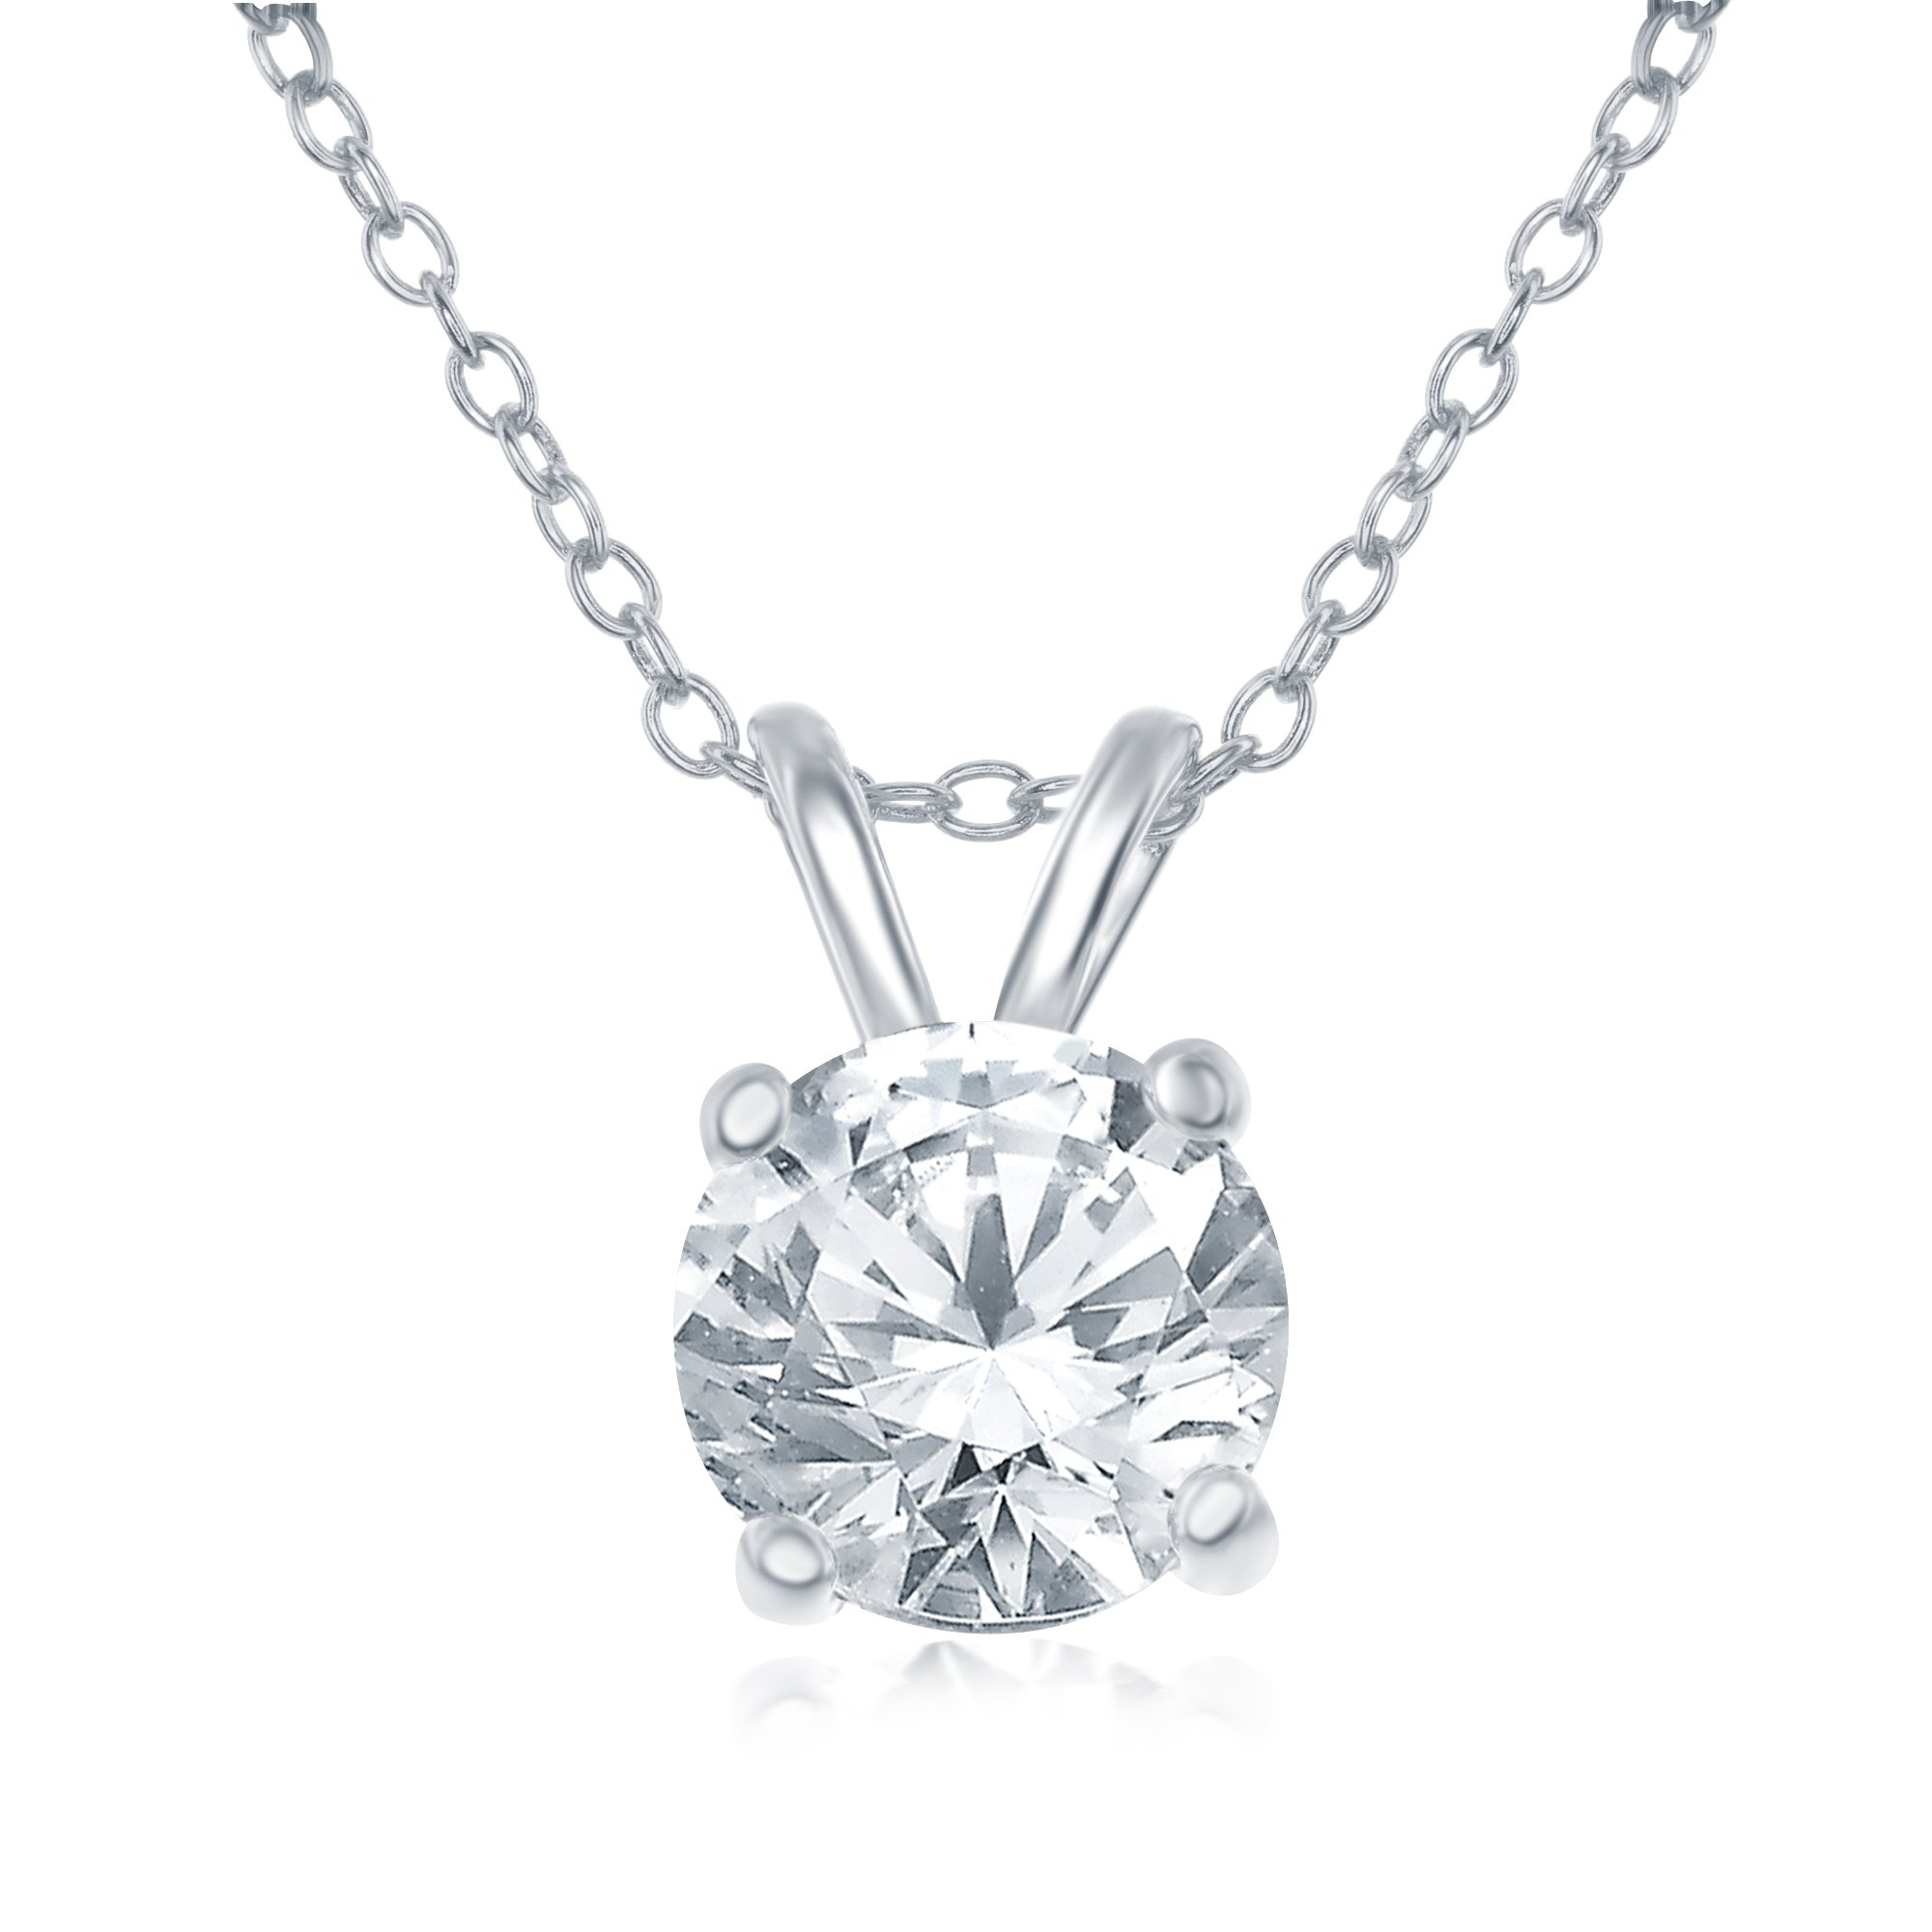 AceLay Sterling Silver 925 Round Cut Clear Cubic Zirconia CZ Choker Pendant Necklace for Women 18'' (Silver)